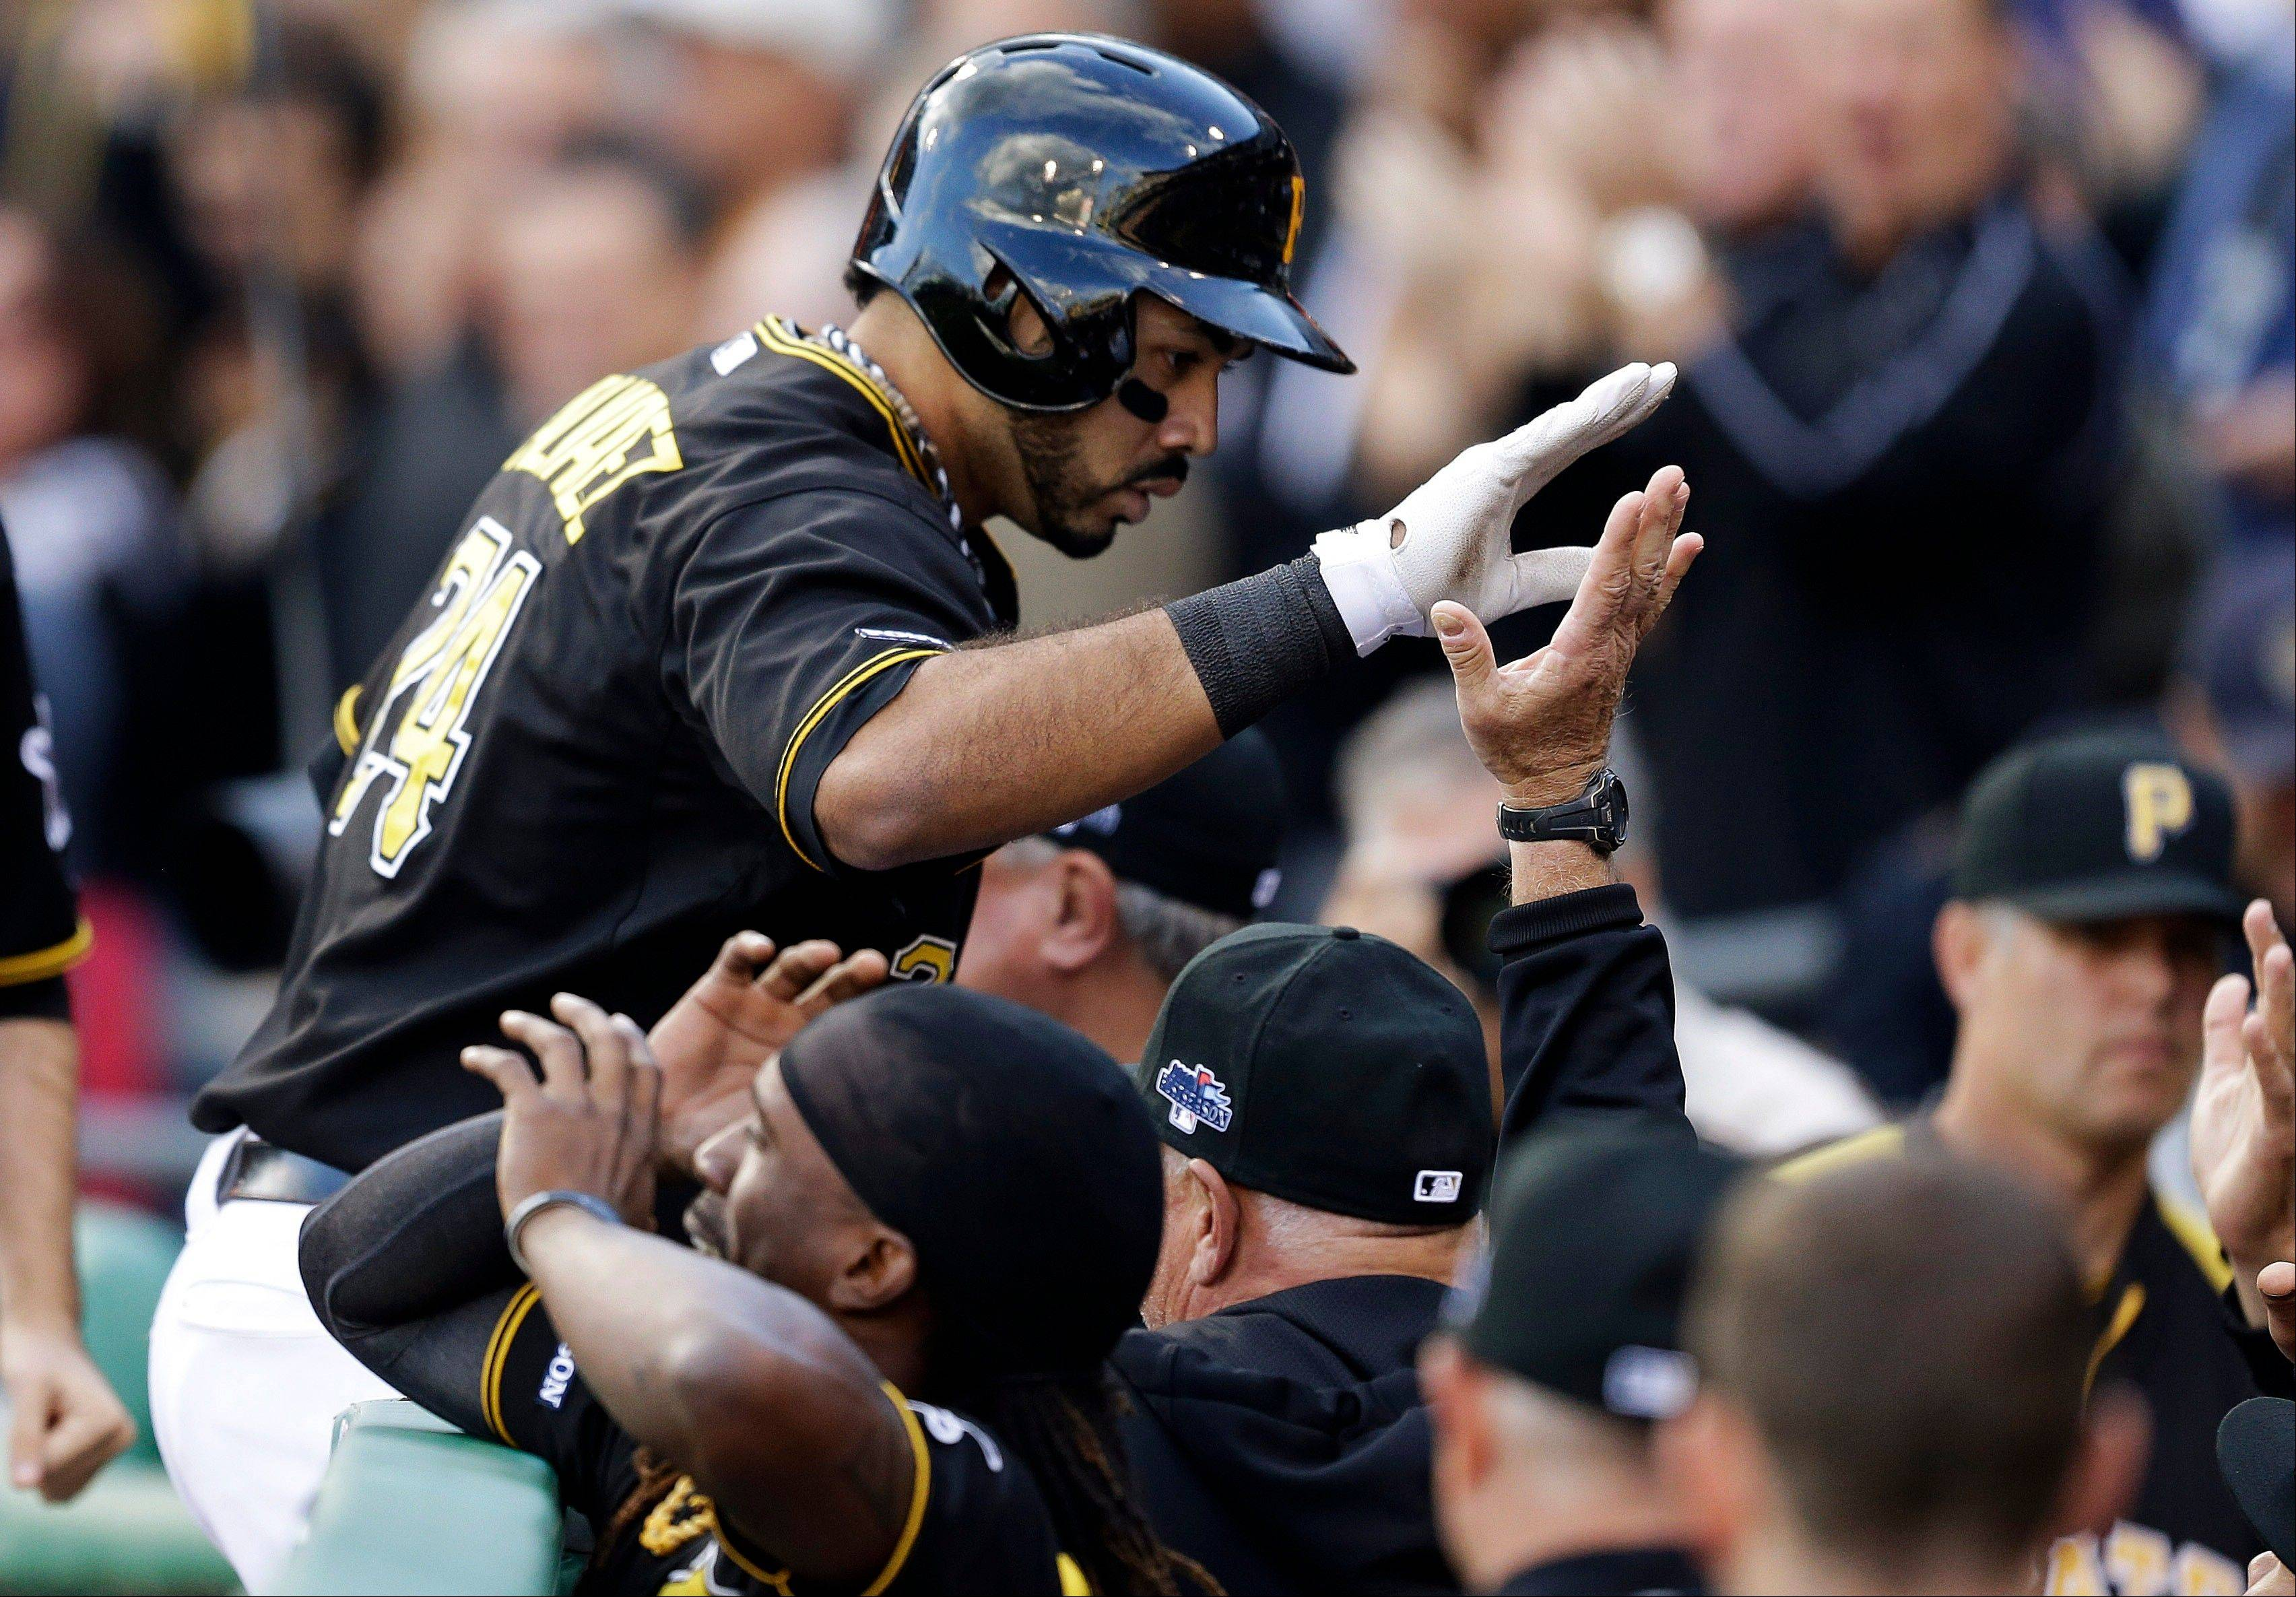 Pittsburgh Pirates' Pedro Alvarez celebrates with teammates as he returns to the dugout after his solo home run off St. Louis Cardinals pitcher Michael Wacha in the eighth inning Monday in Game 4 of their National League Division Series.